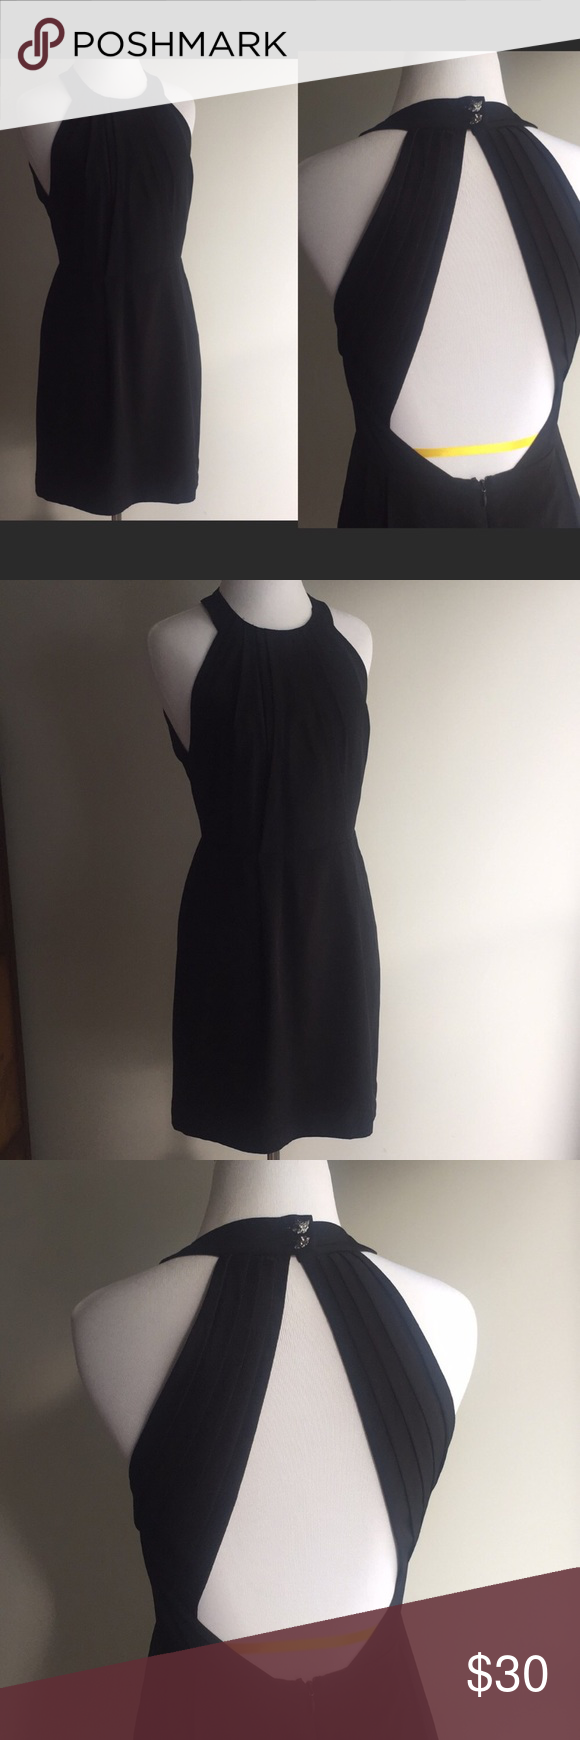 """BCBGeneration Lined Cocktail Dress Pristine Size 2 Little Black Dress LBD BCBGeneration Lined Black Dress.  Open pleated Back adorable Fox Buttons. Cocktail After 5 Attire Bust pit to pit 15"""" Length 34"""" BCBGeneration Dresses Backless #backlesscocktaildress"""